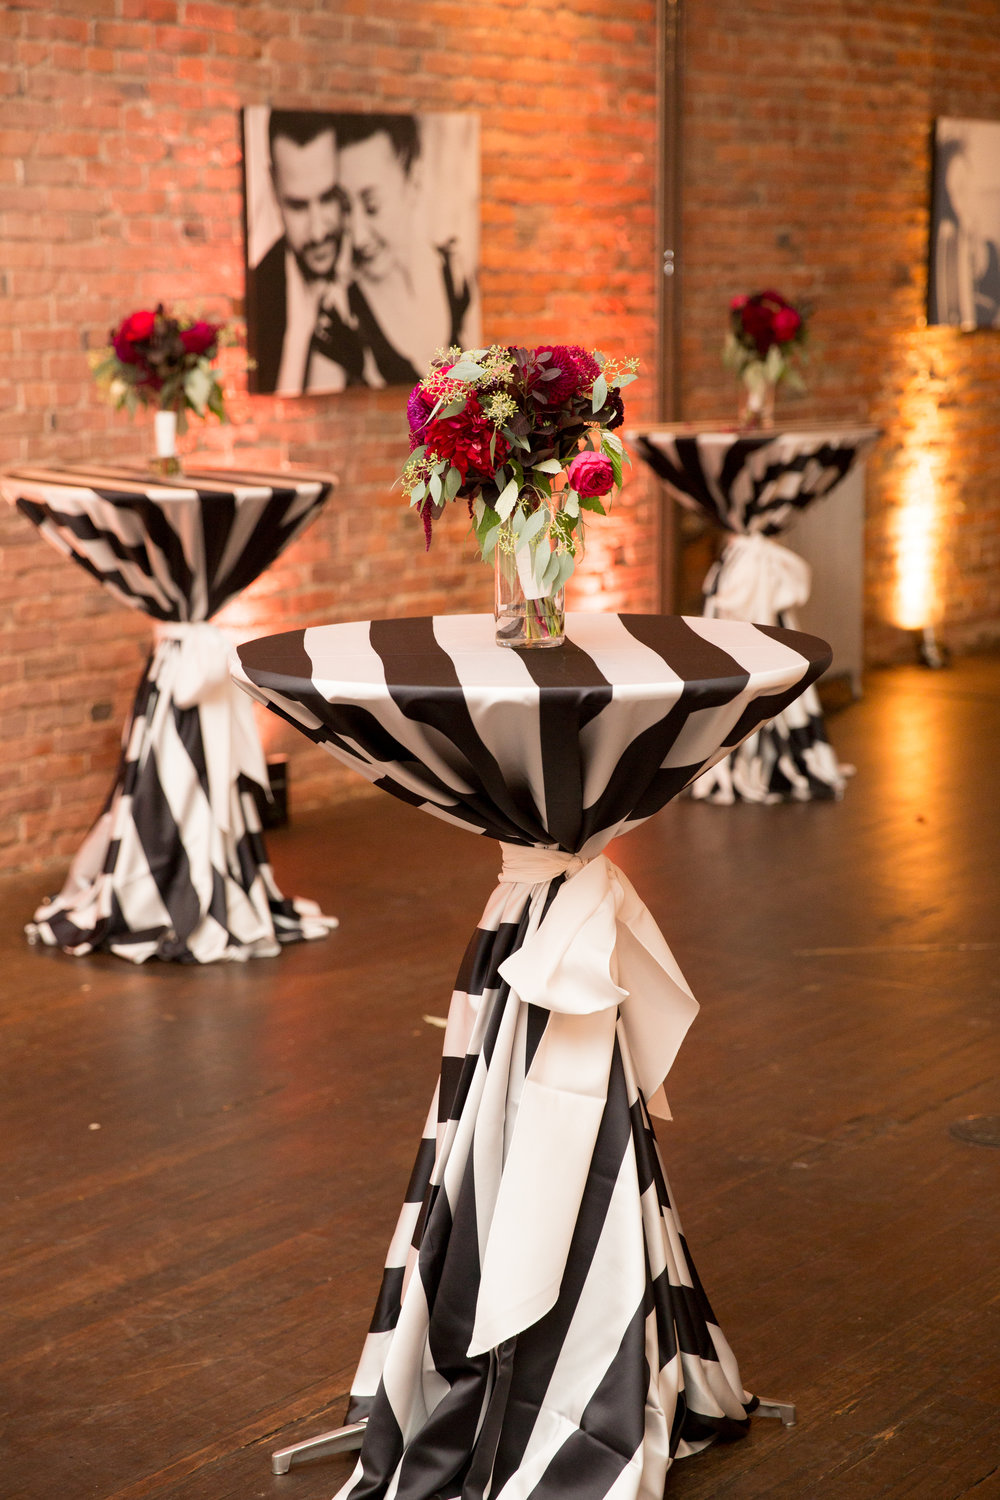 Black and White striped cocktail table linens with burgundy and pink florals